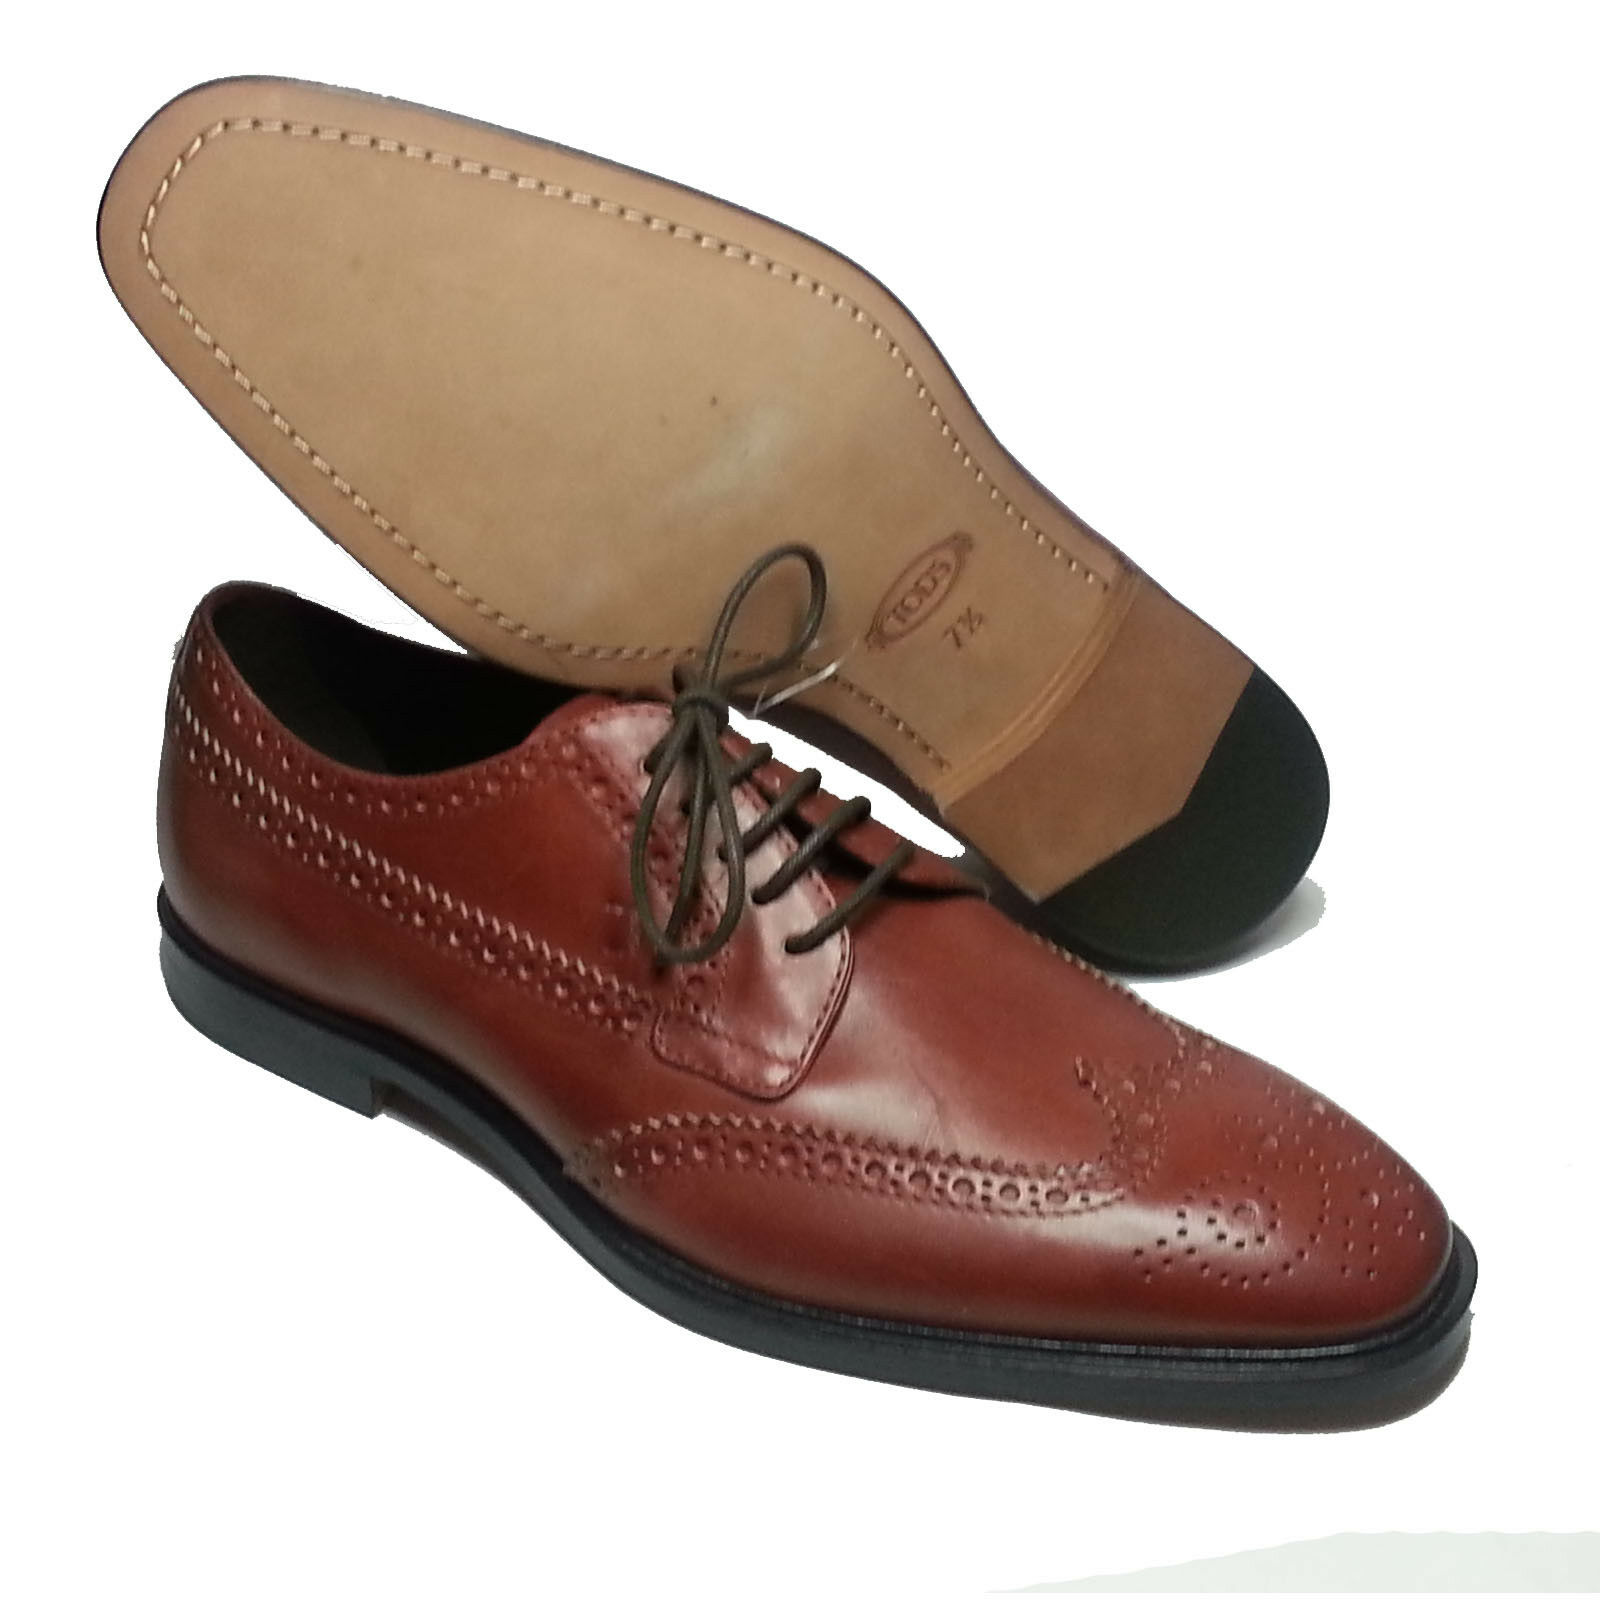 TOD'S TOD'S TOD'S Uomo Wingtip Brogue Brown Derby Shoes Size 8.5 Made in Italy d8604e